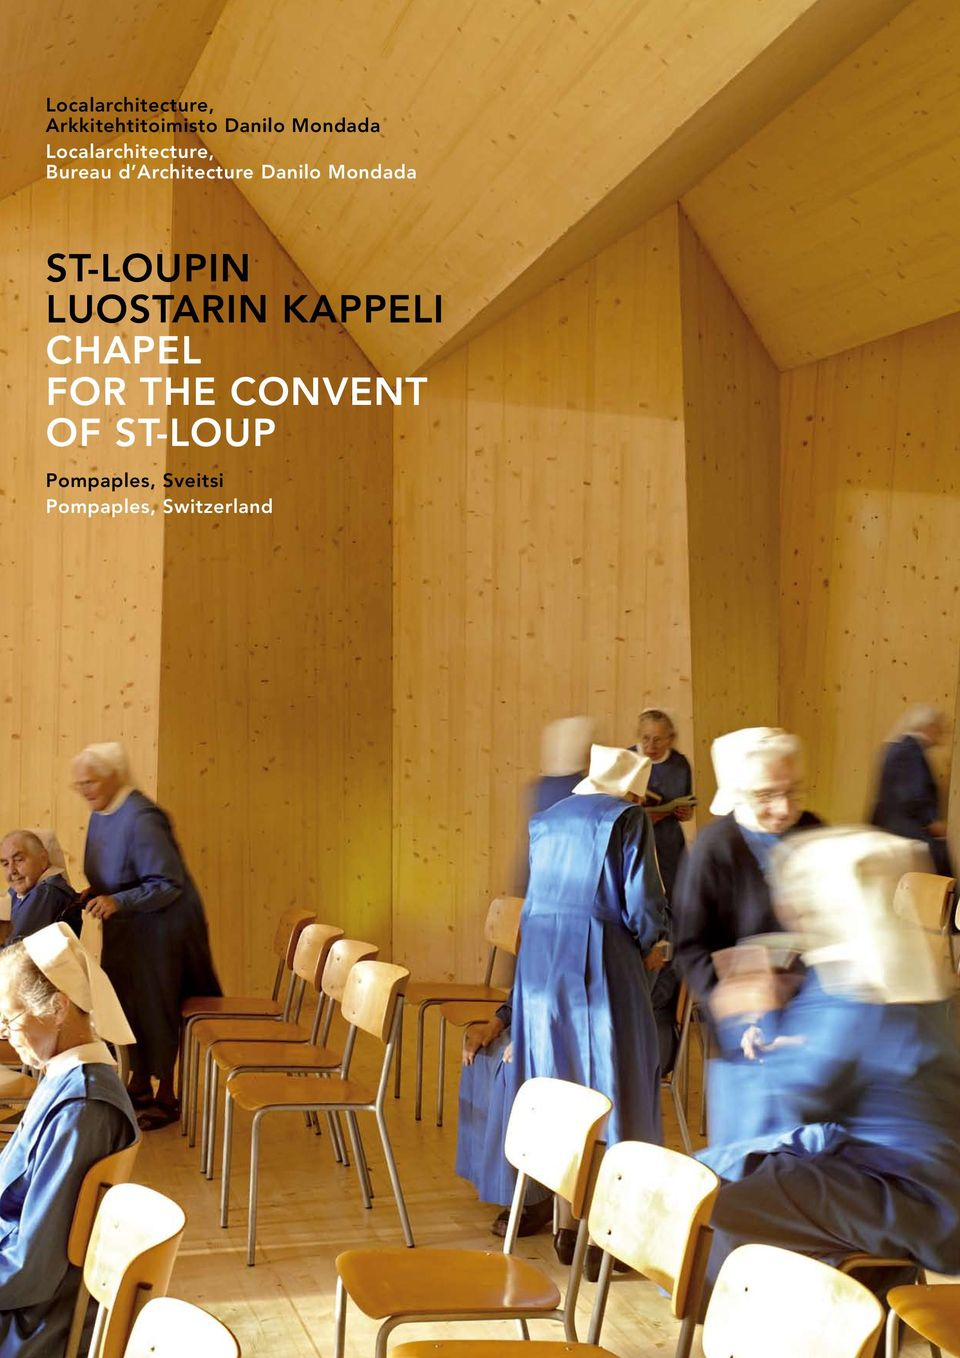 Mondada St-Loupin luostarin kappeli Chapel for the